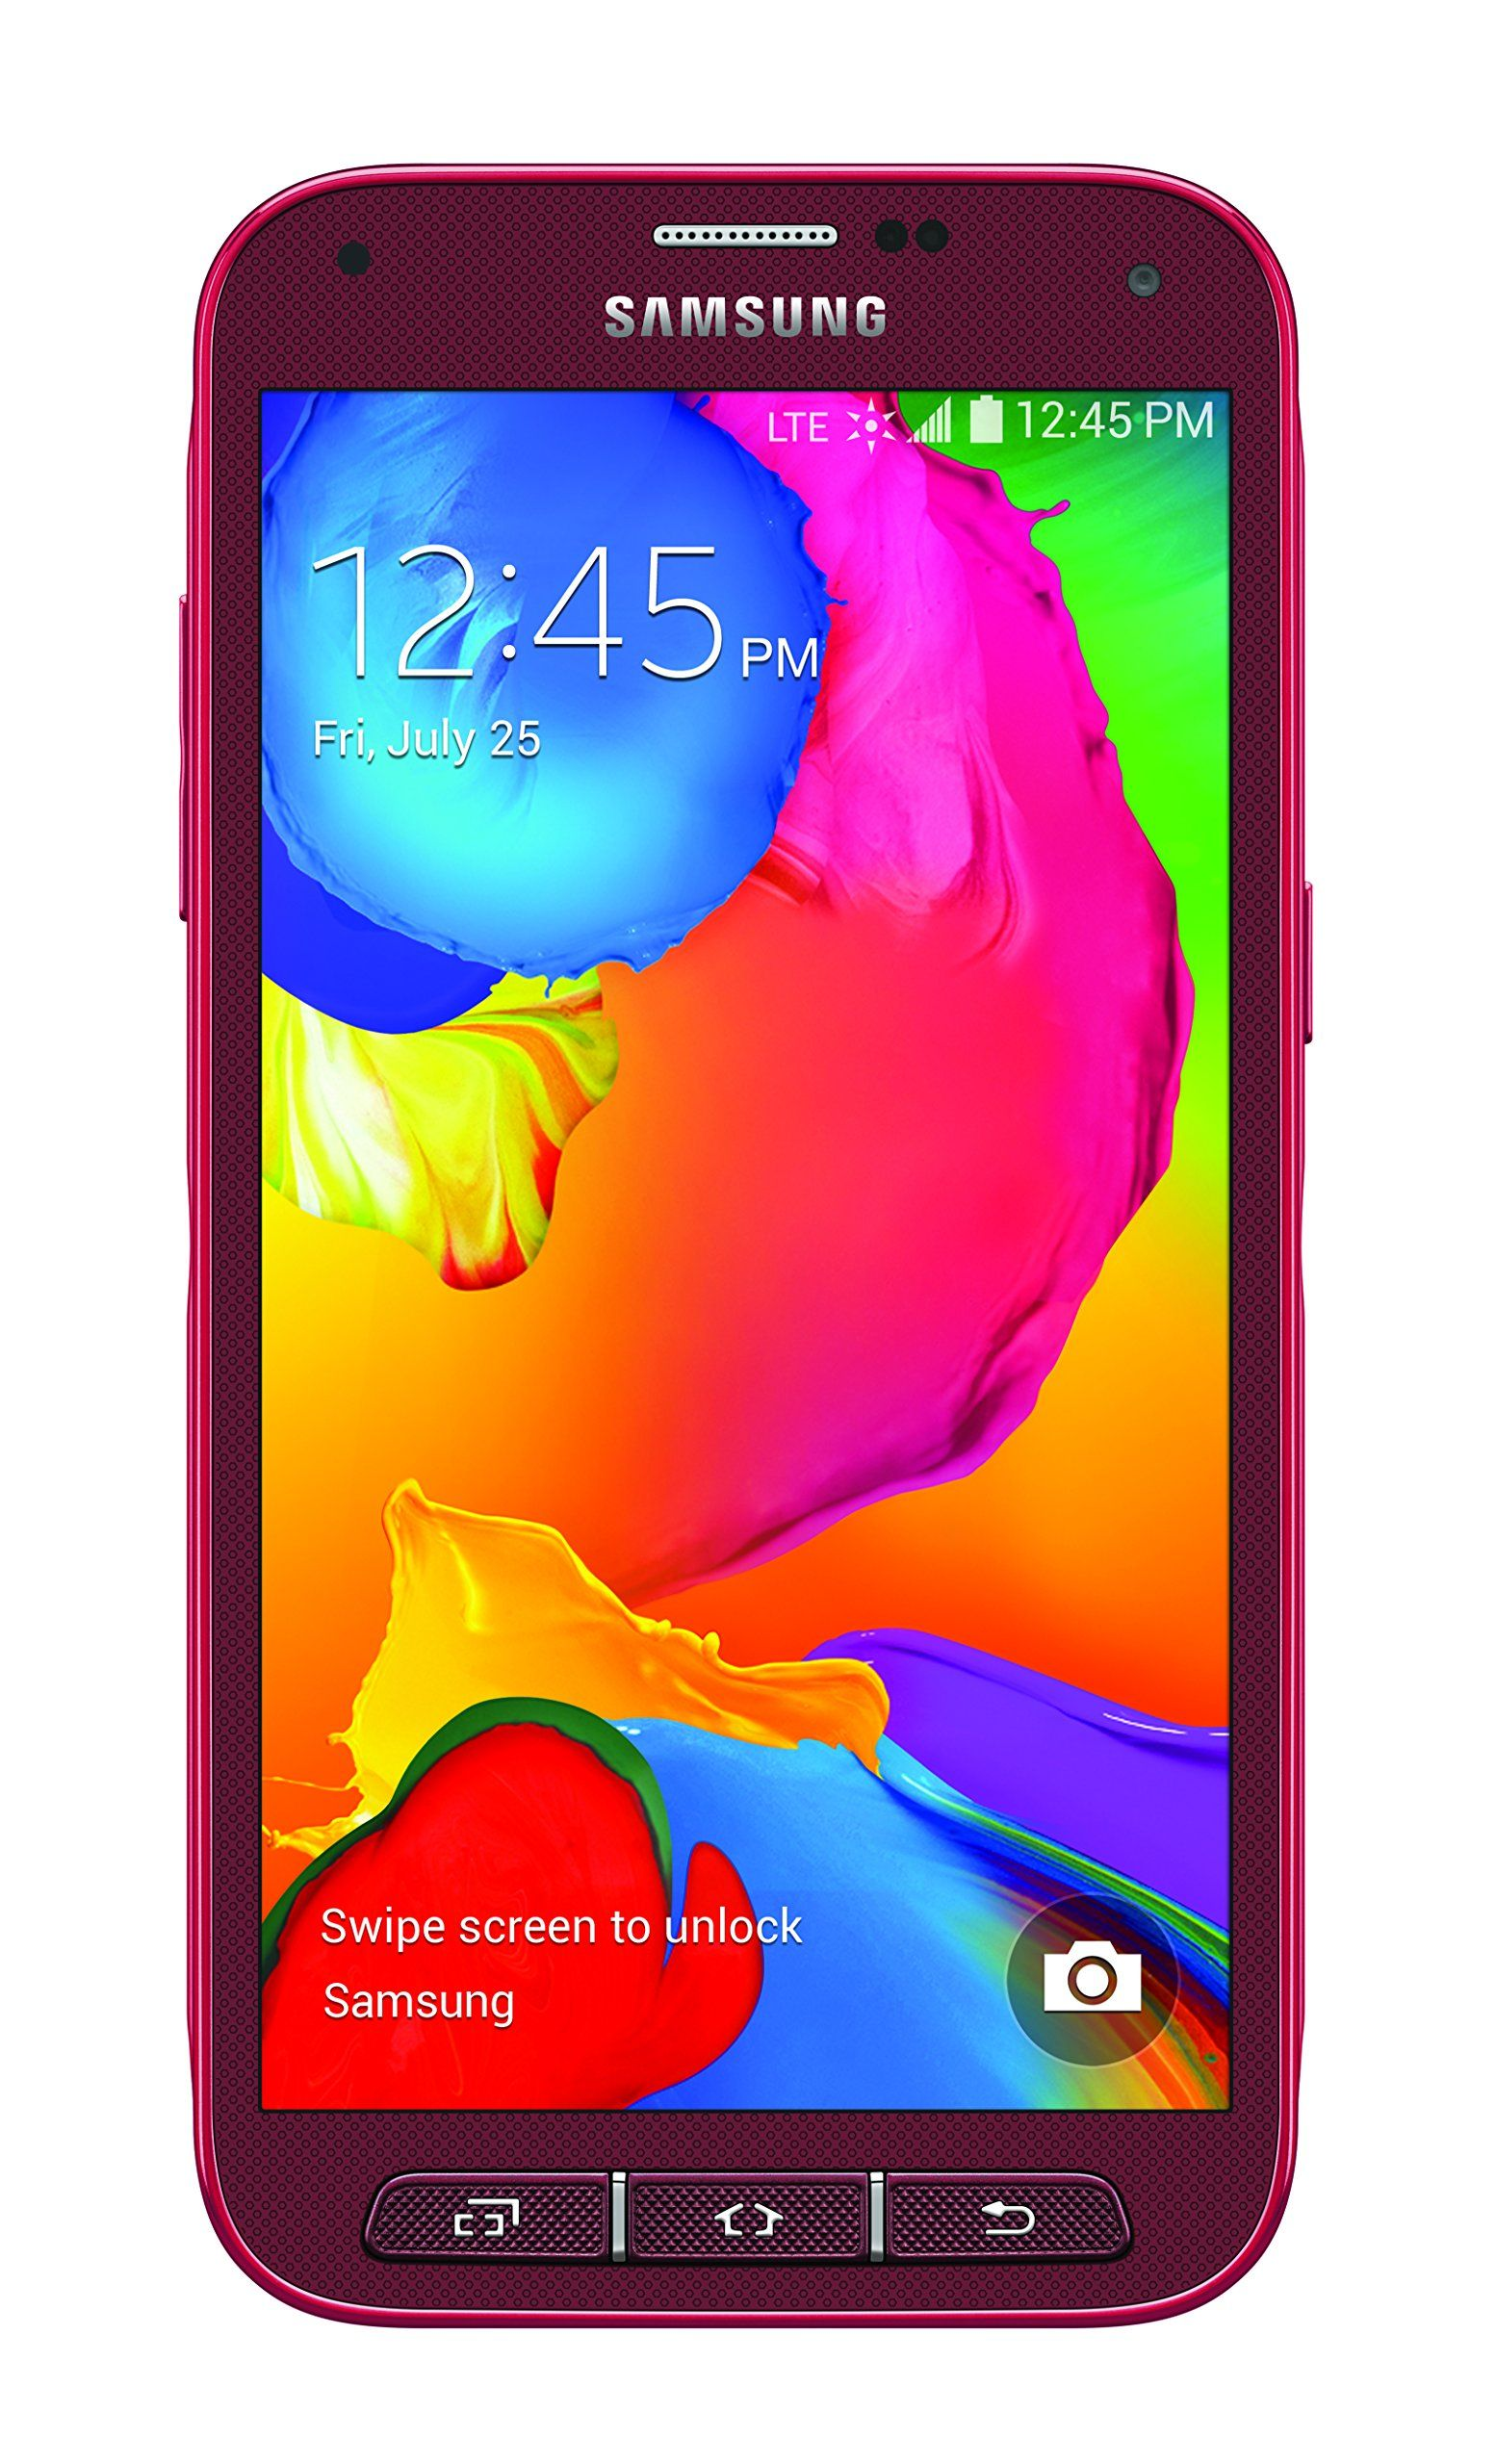 Samsung Galaxy S5 Sport, Cherry Red 16GB (Sprint) | Outlet | Samsung